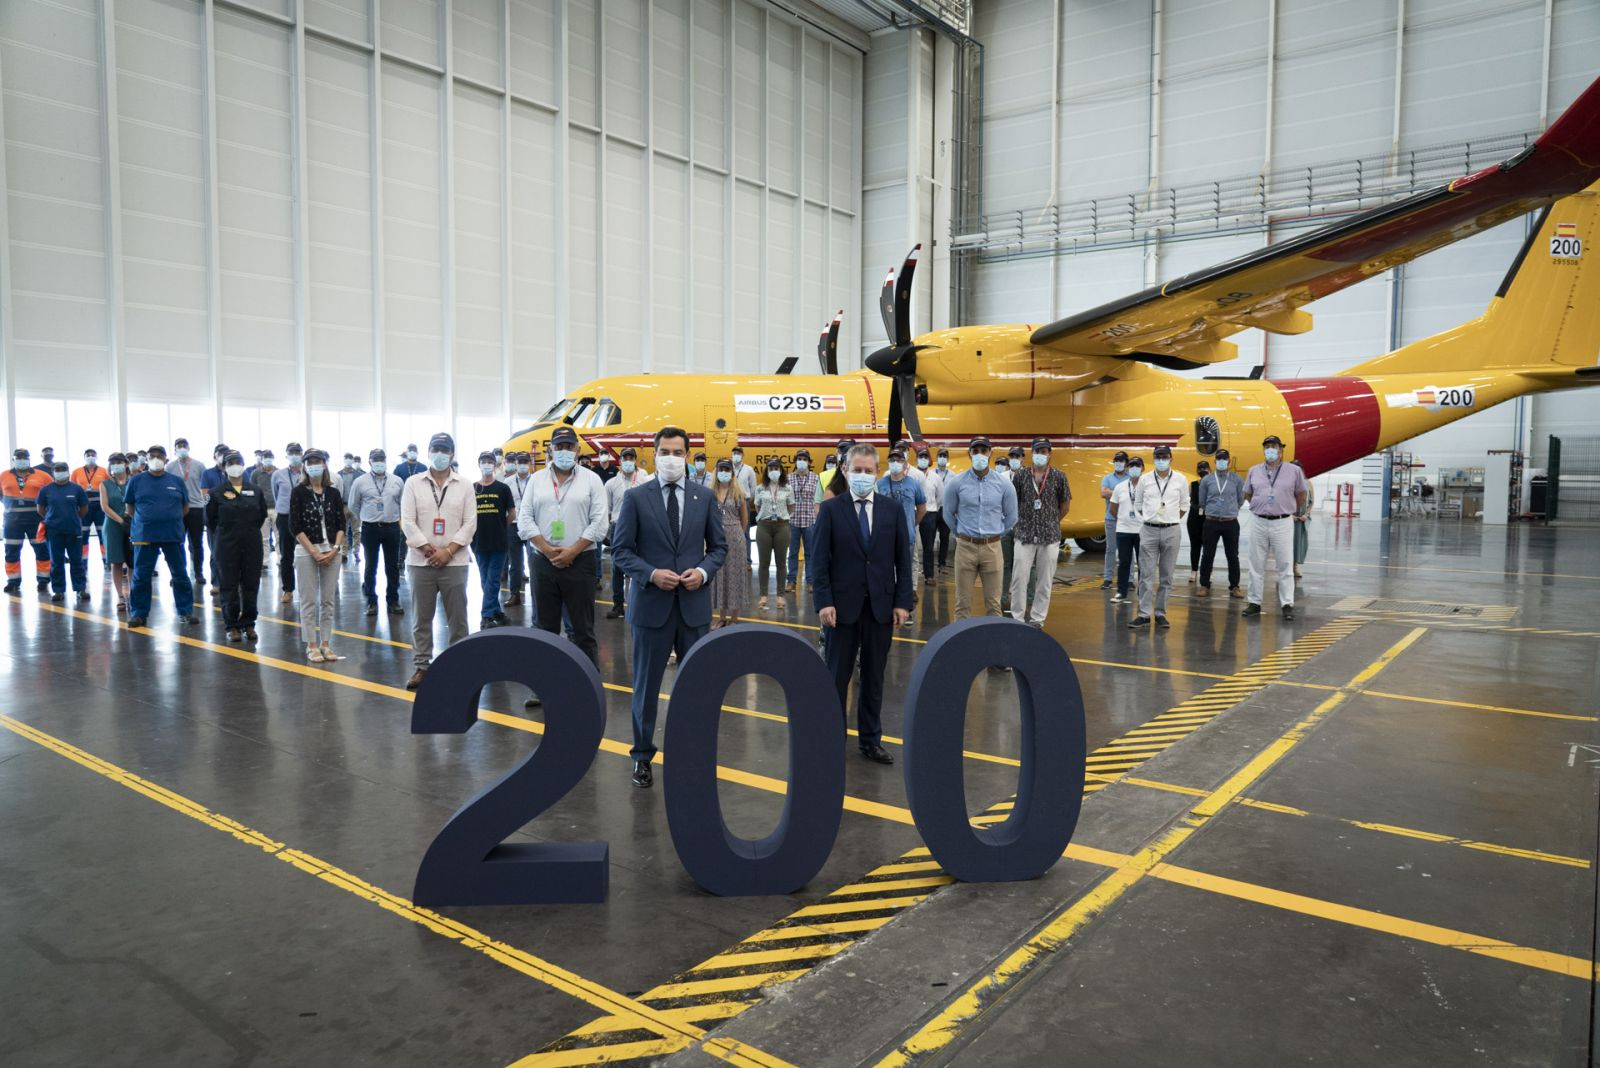 Canada receives its 200th Airbus C295 transport aircraft